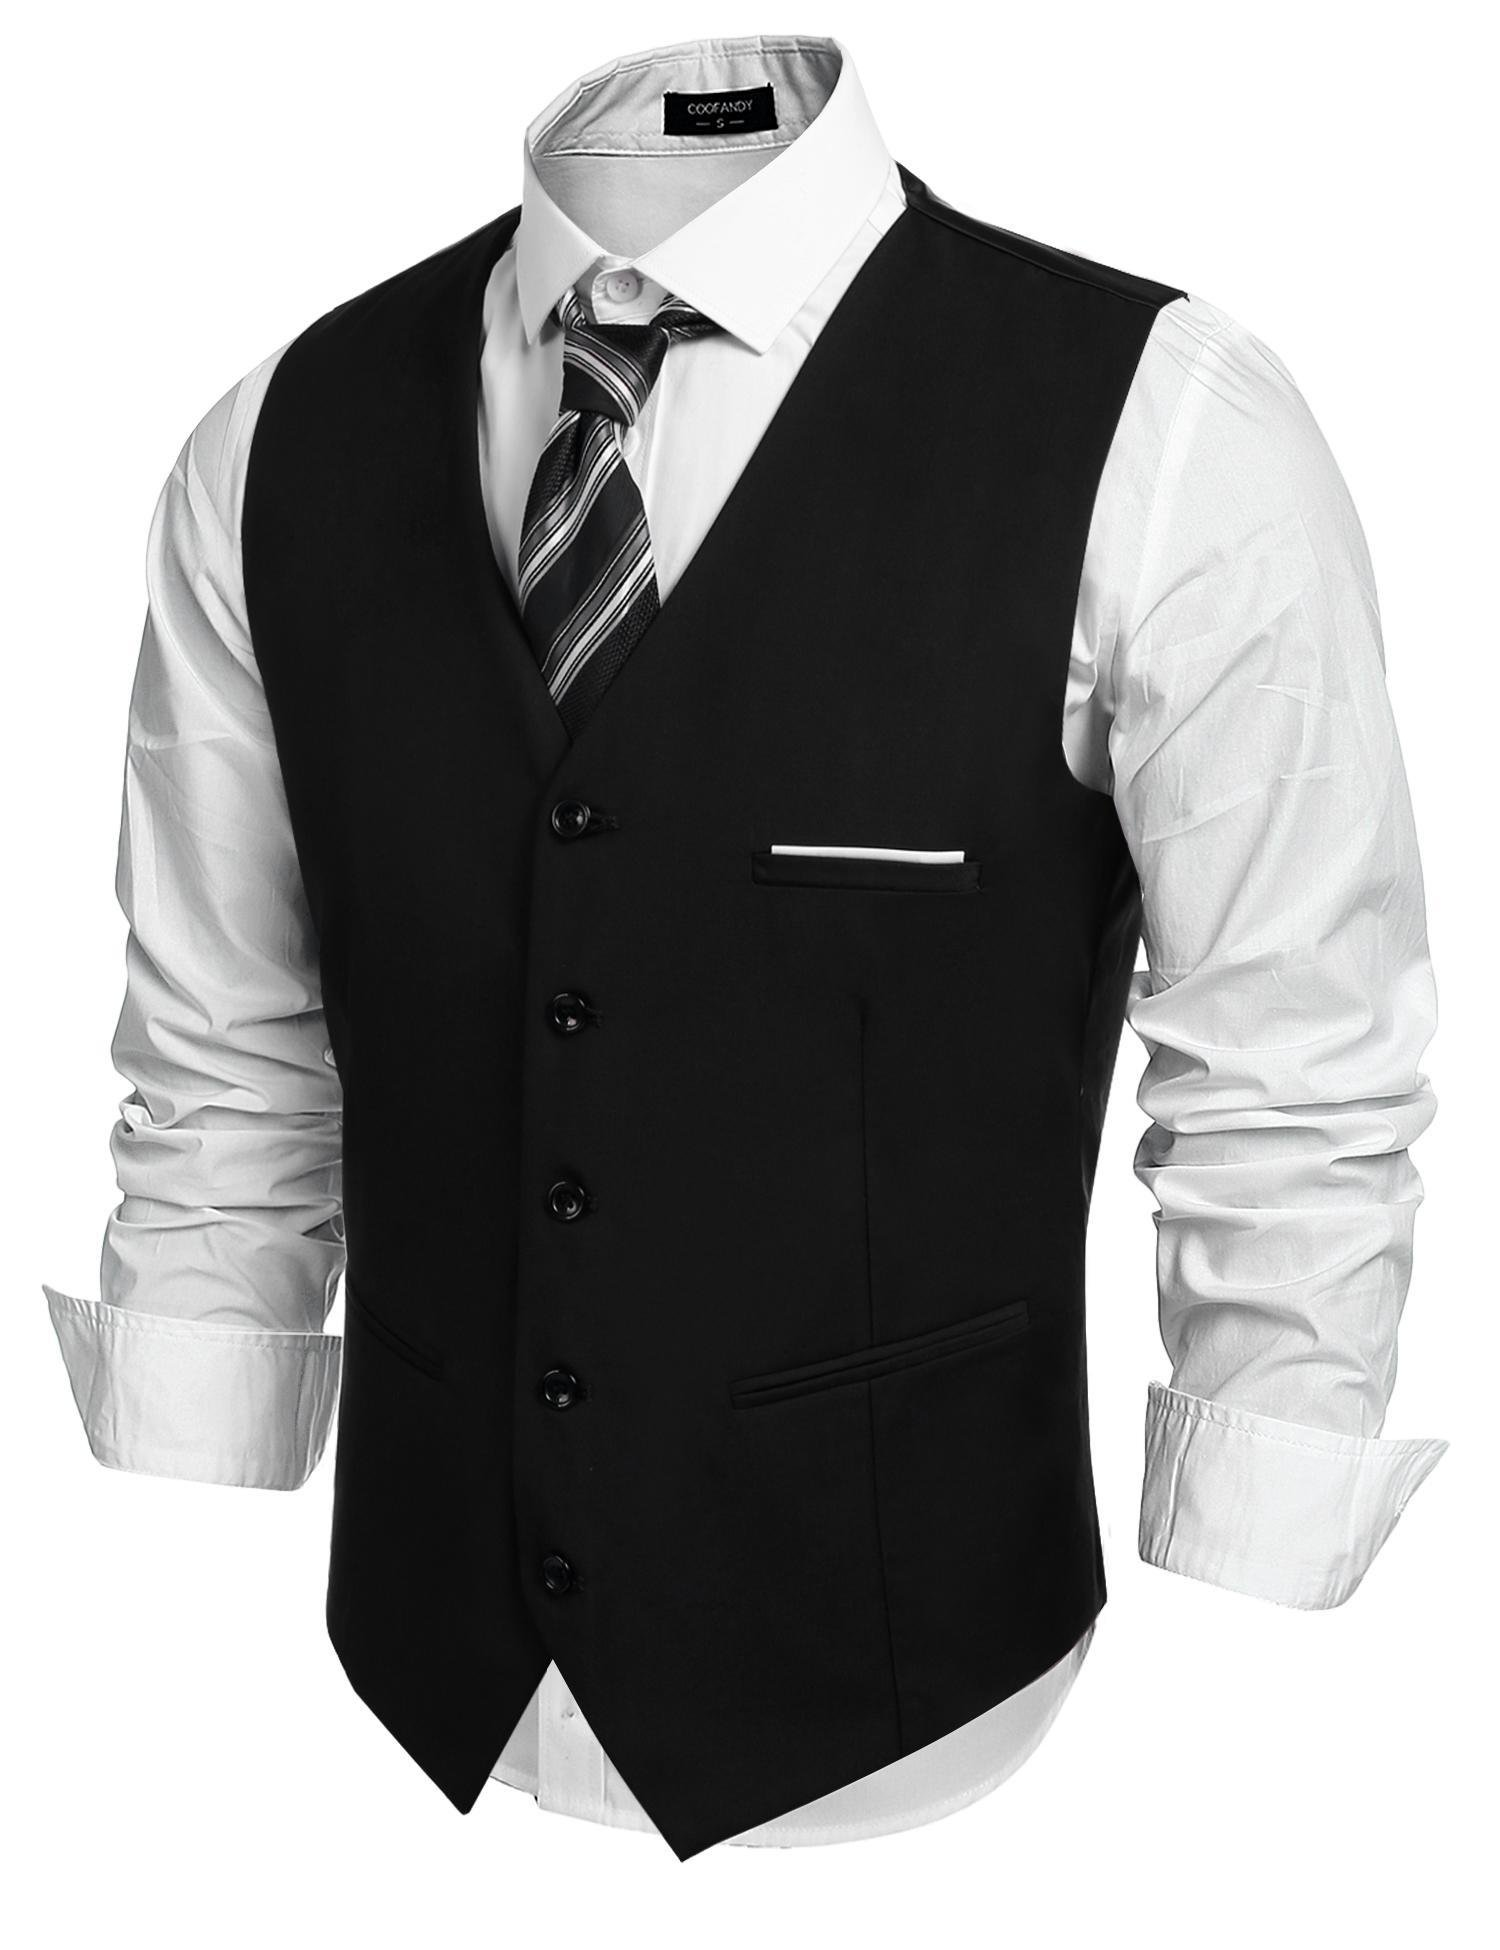 COOFANDY Men's Fashion Formal Slim Fit Business Dress Suit Vest Waistcoat Black